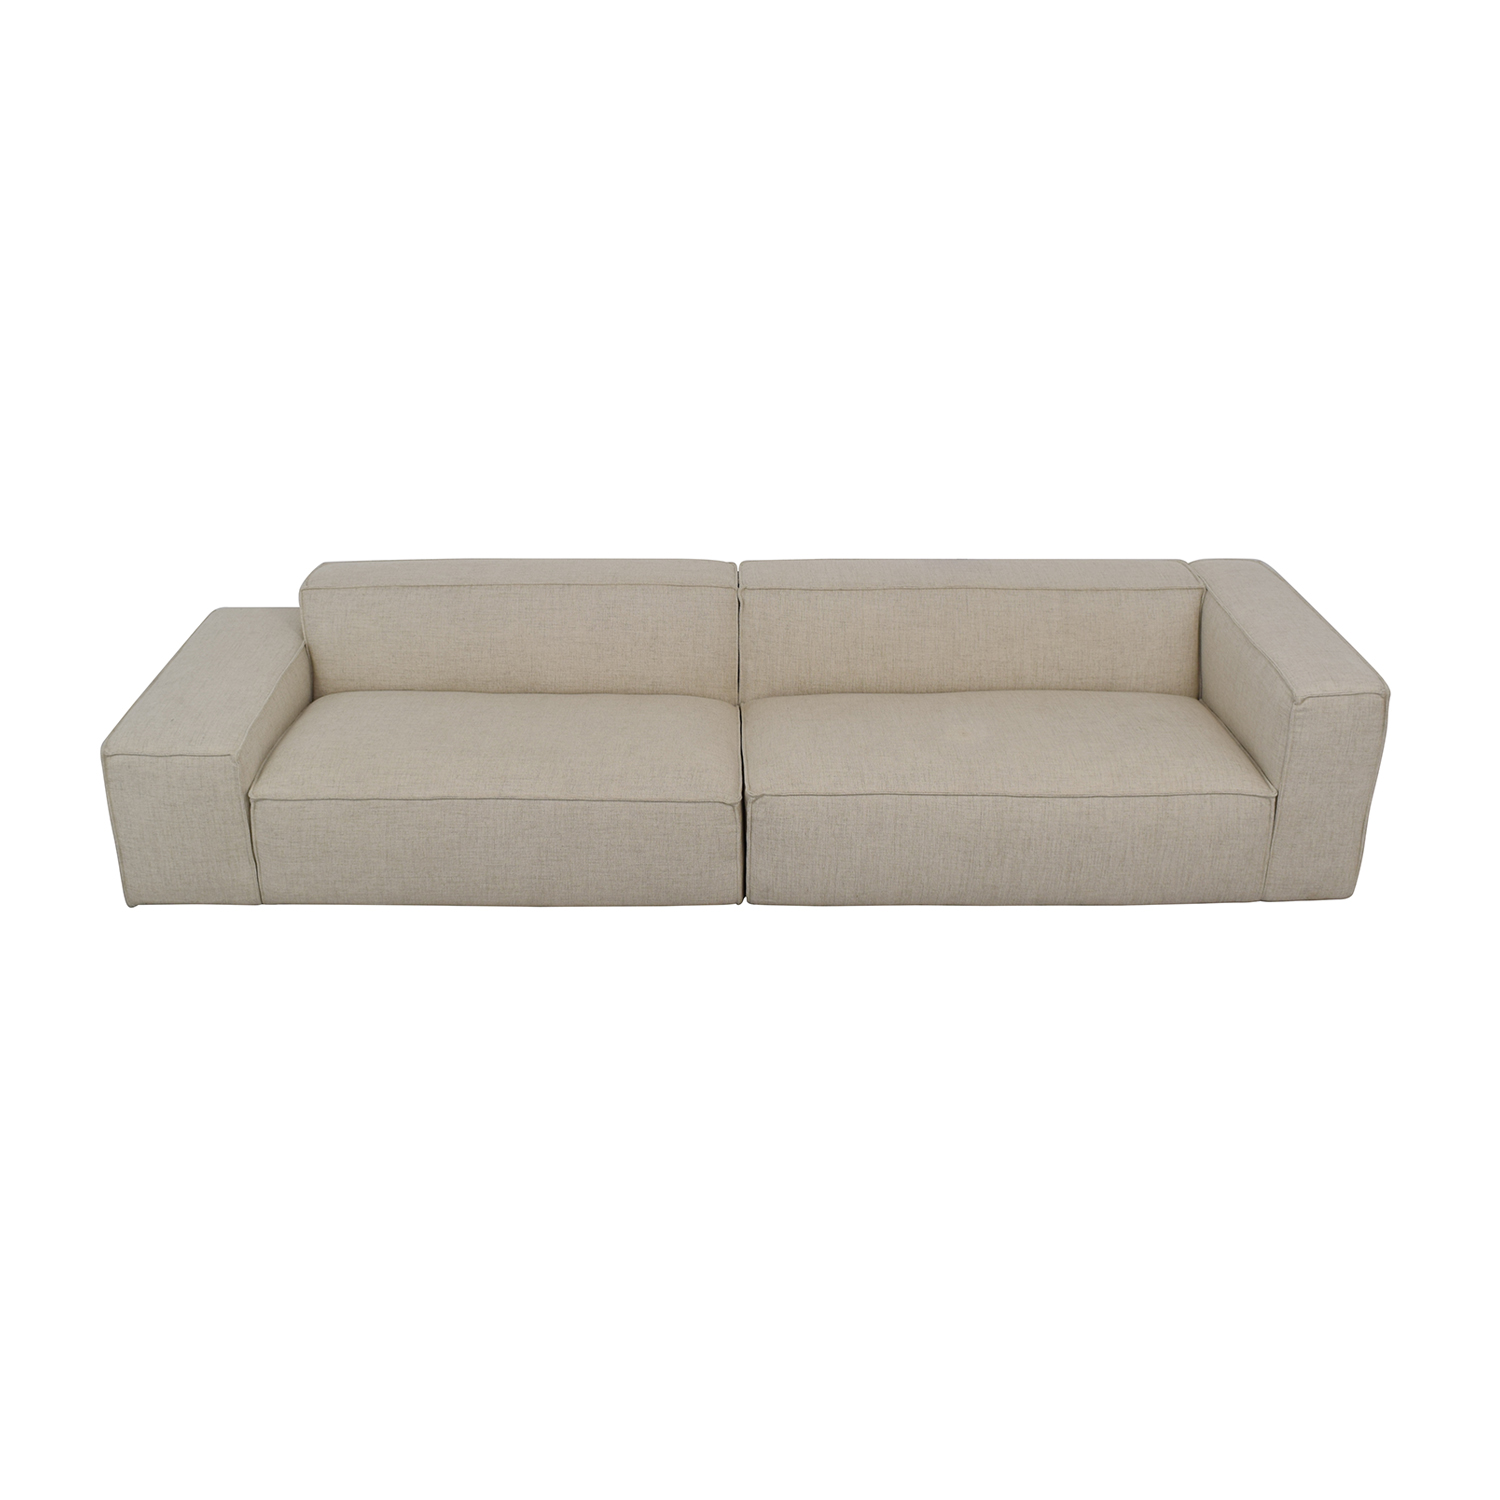 Beige Left Low Right High Two Piece Pebble Weave Sectional Sofa coupon